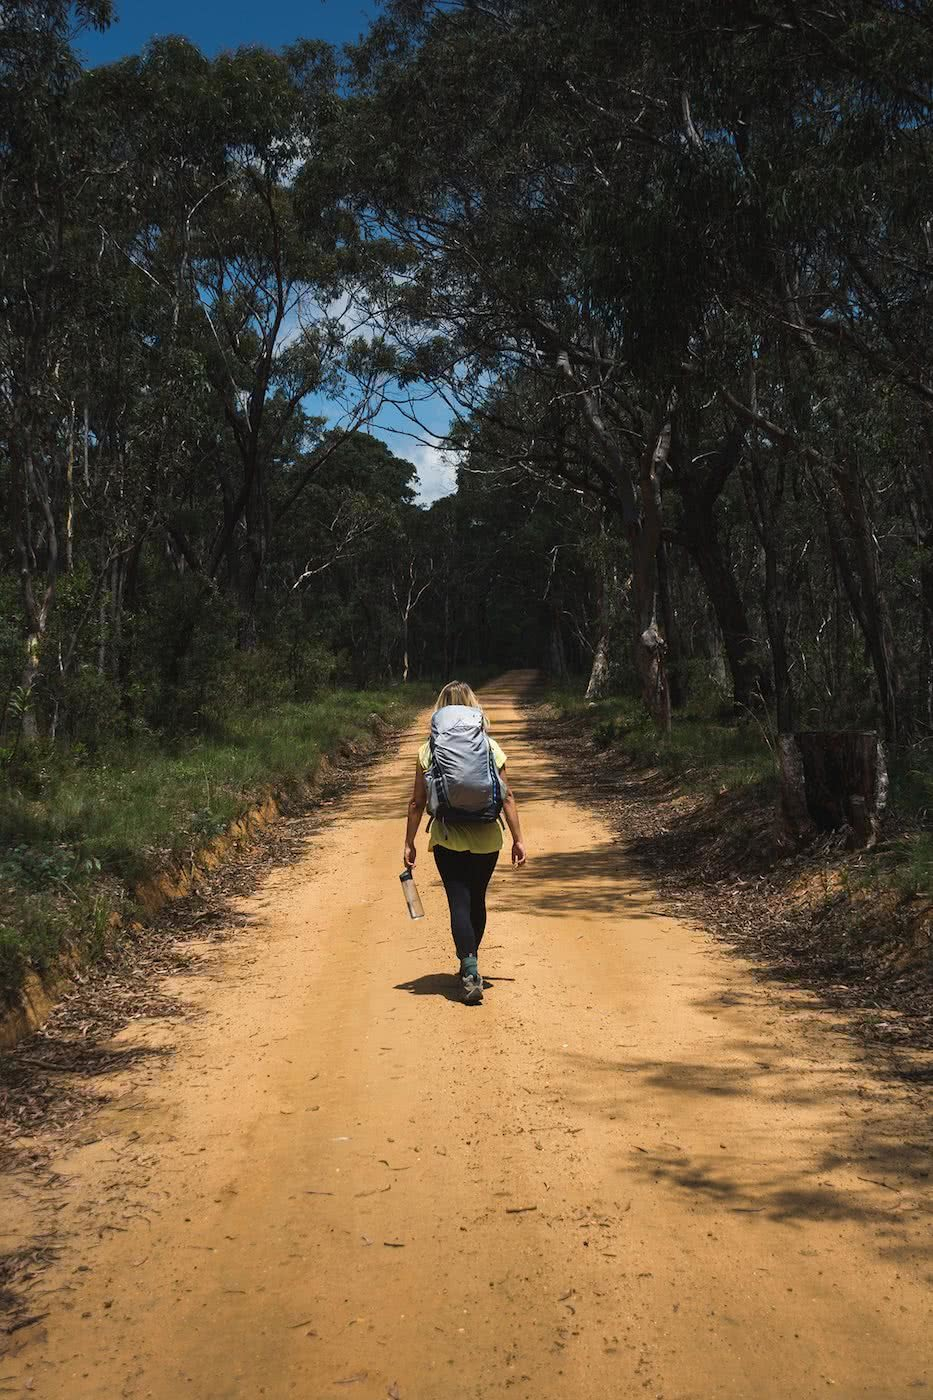 Escape From The Urban // Blackheath To Acacia Flat (NSW), Matt n Kat Pearce, Kat on fire trail, hiker, backpack, trees